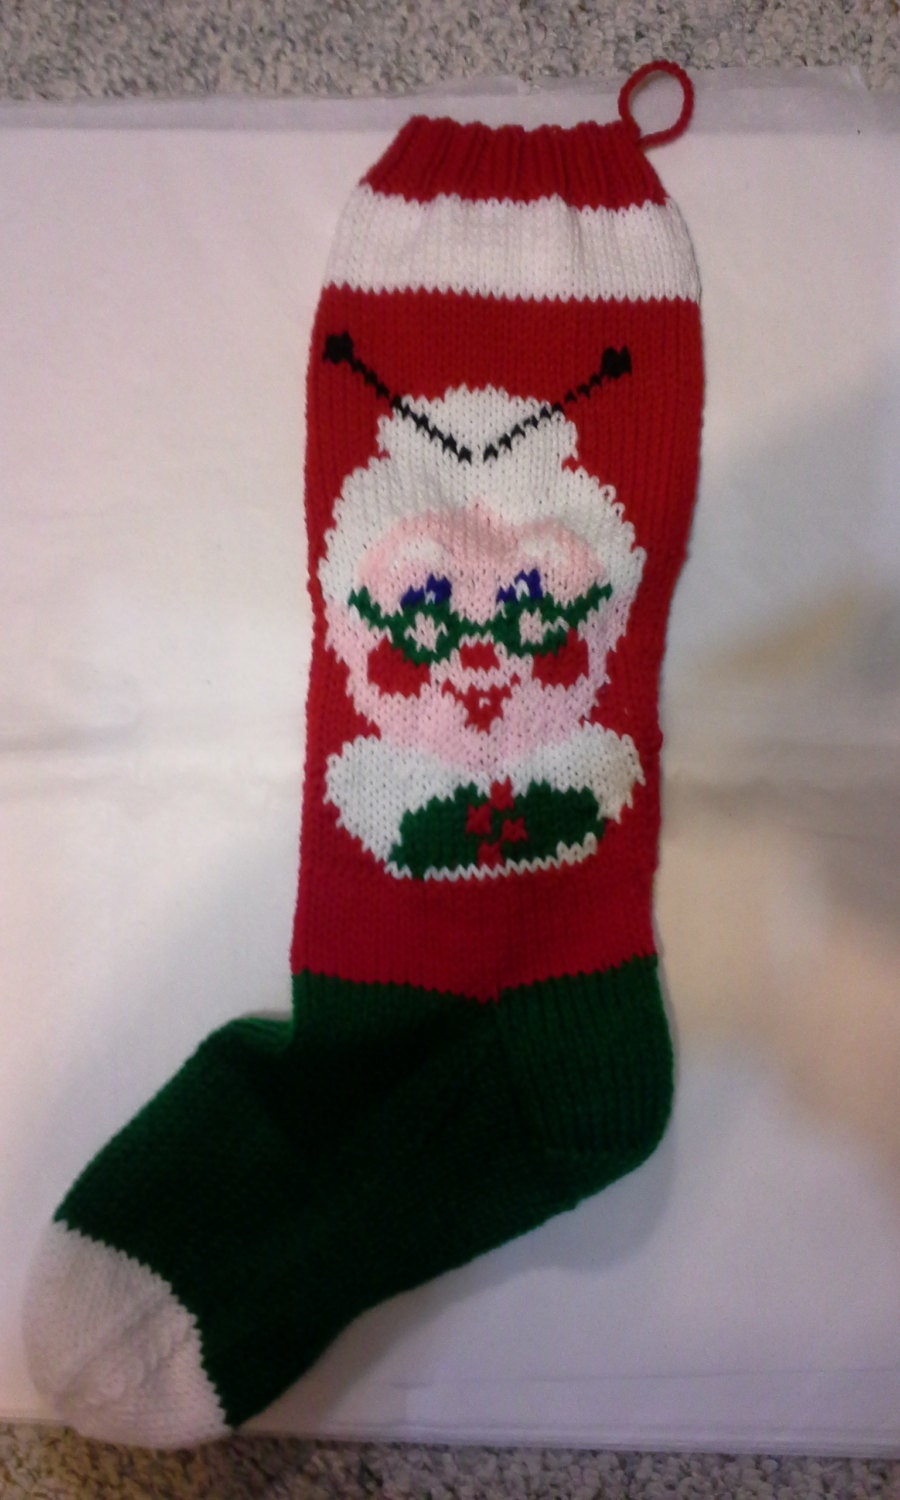 Hand knit Mrs. Santa Claus Christmas stocking Ready by corinnetom